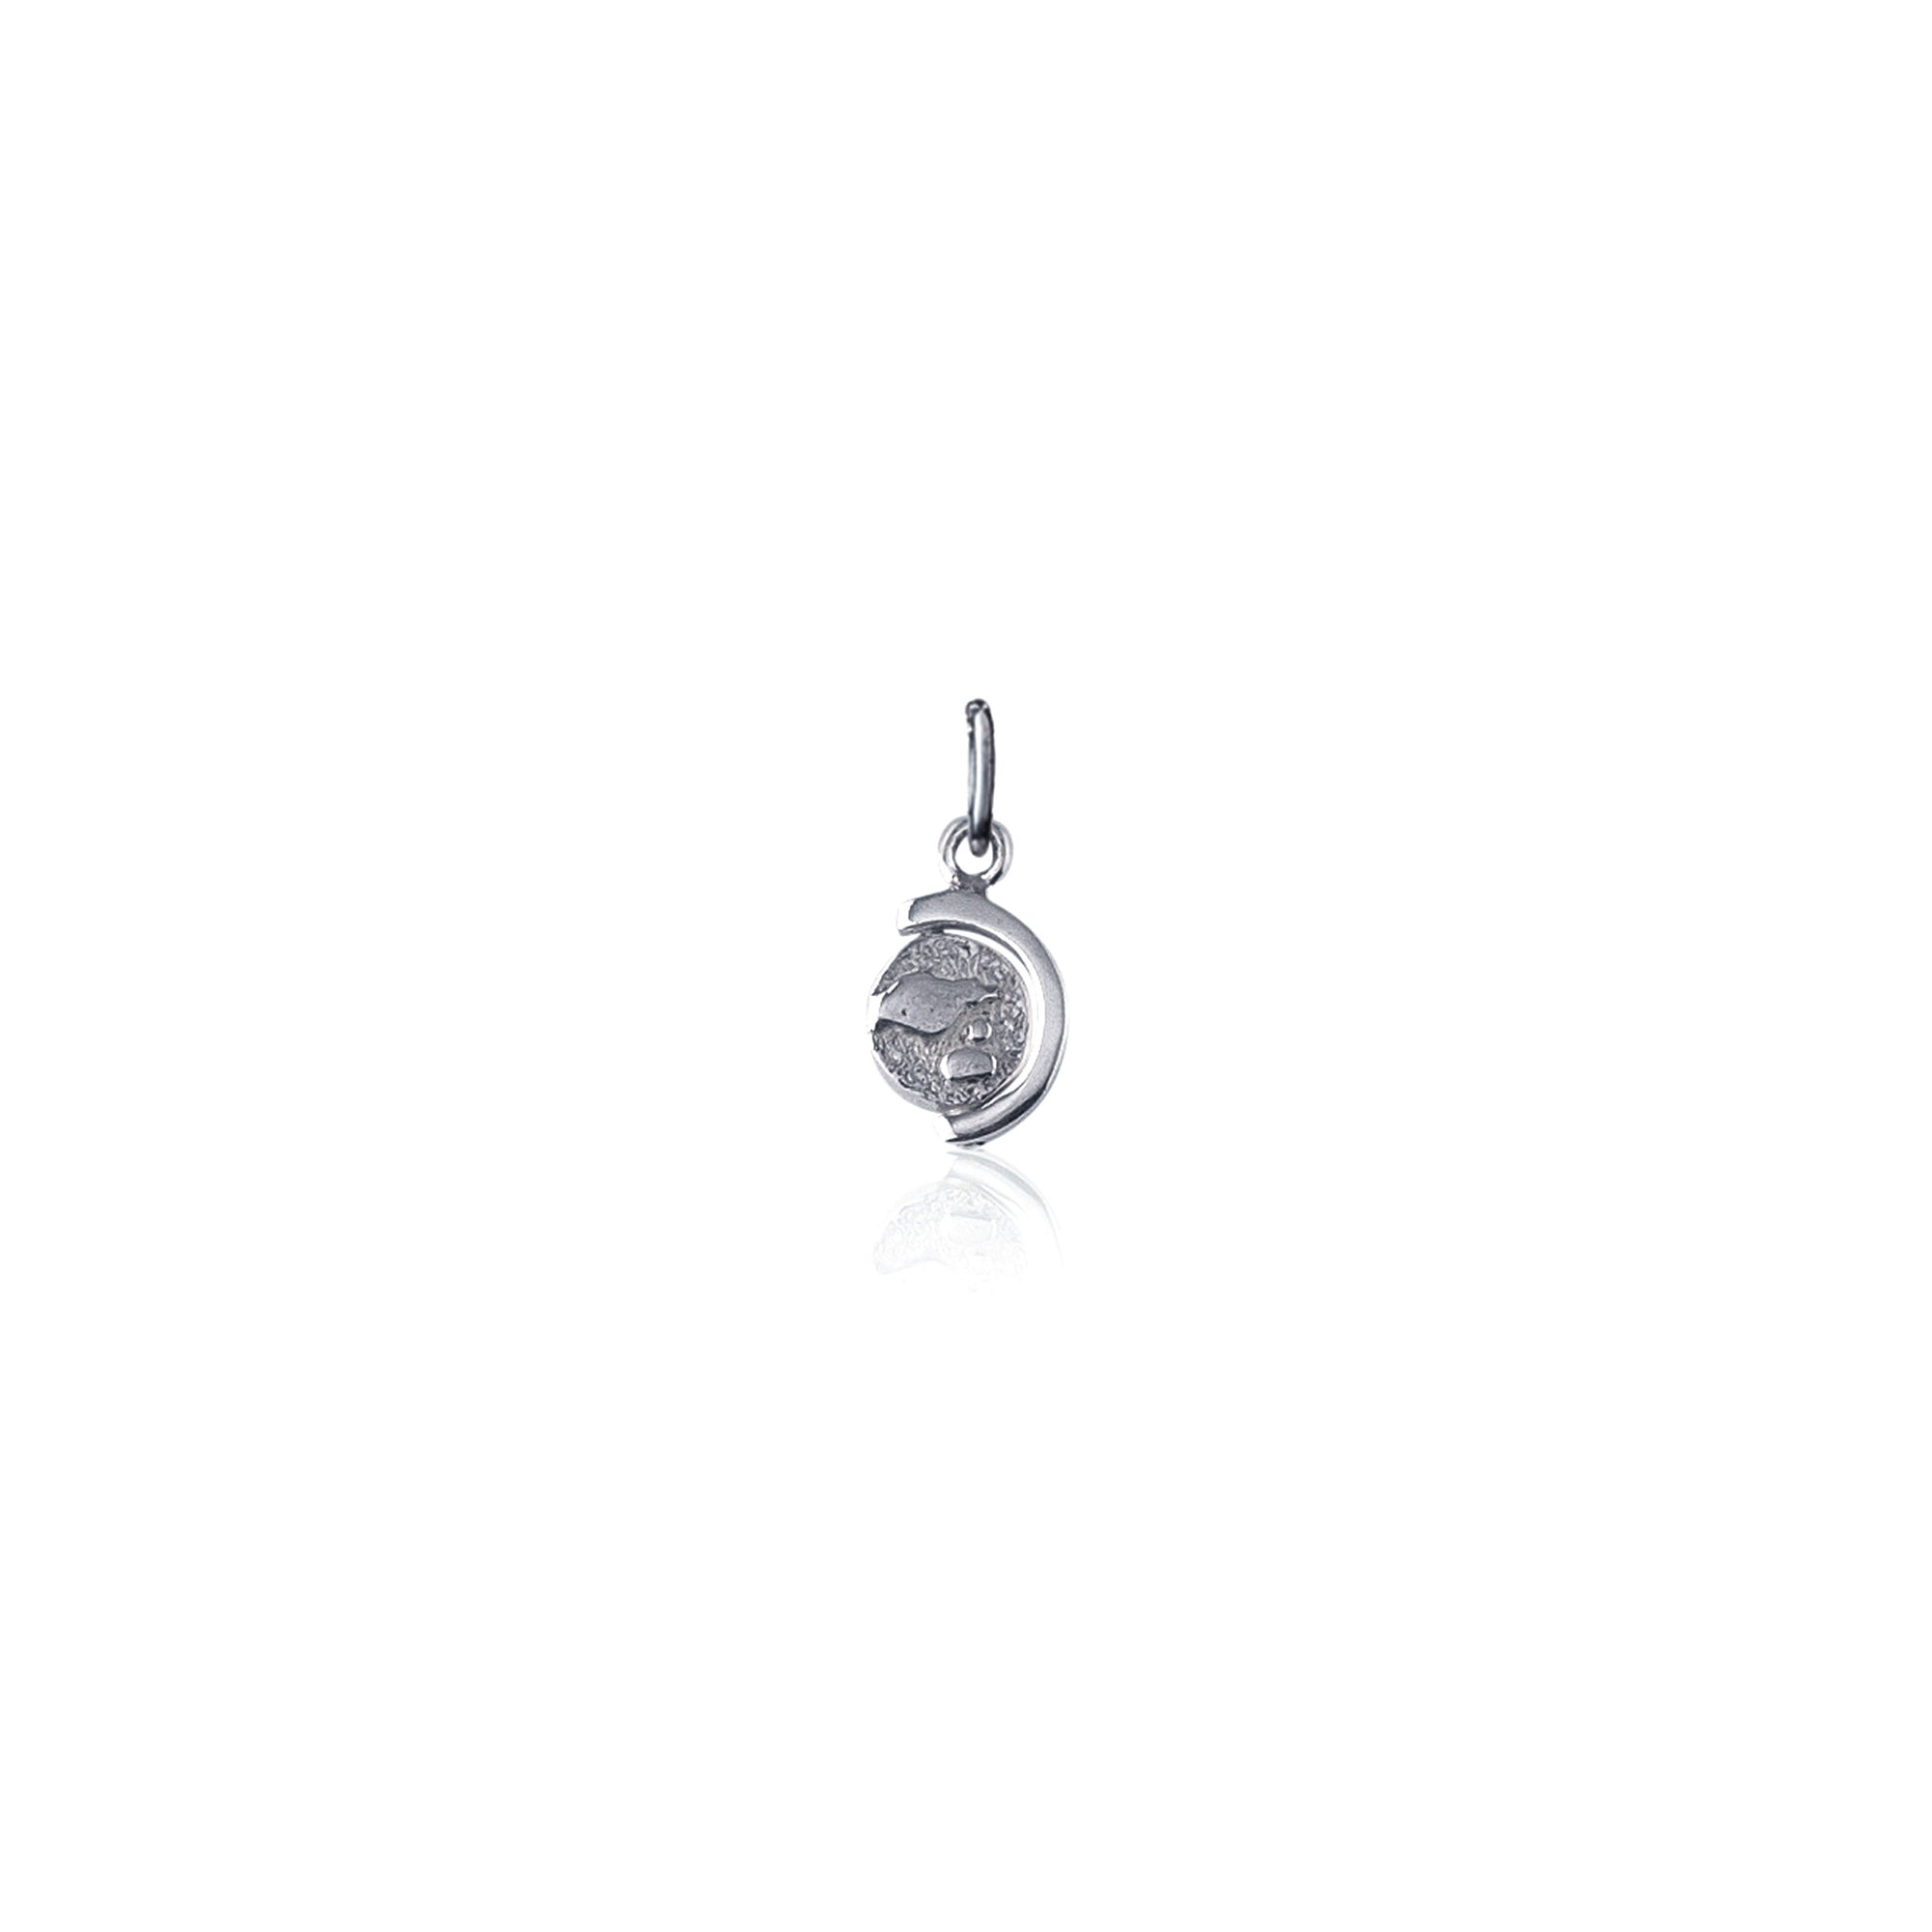 Globetrotter Charm (Silver)